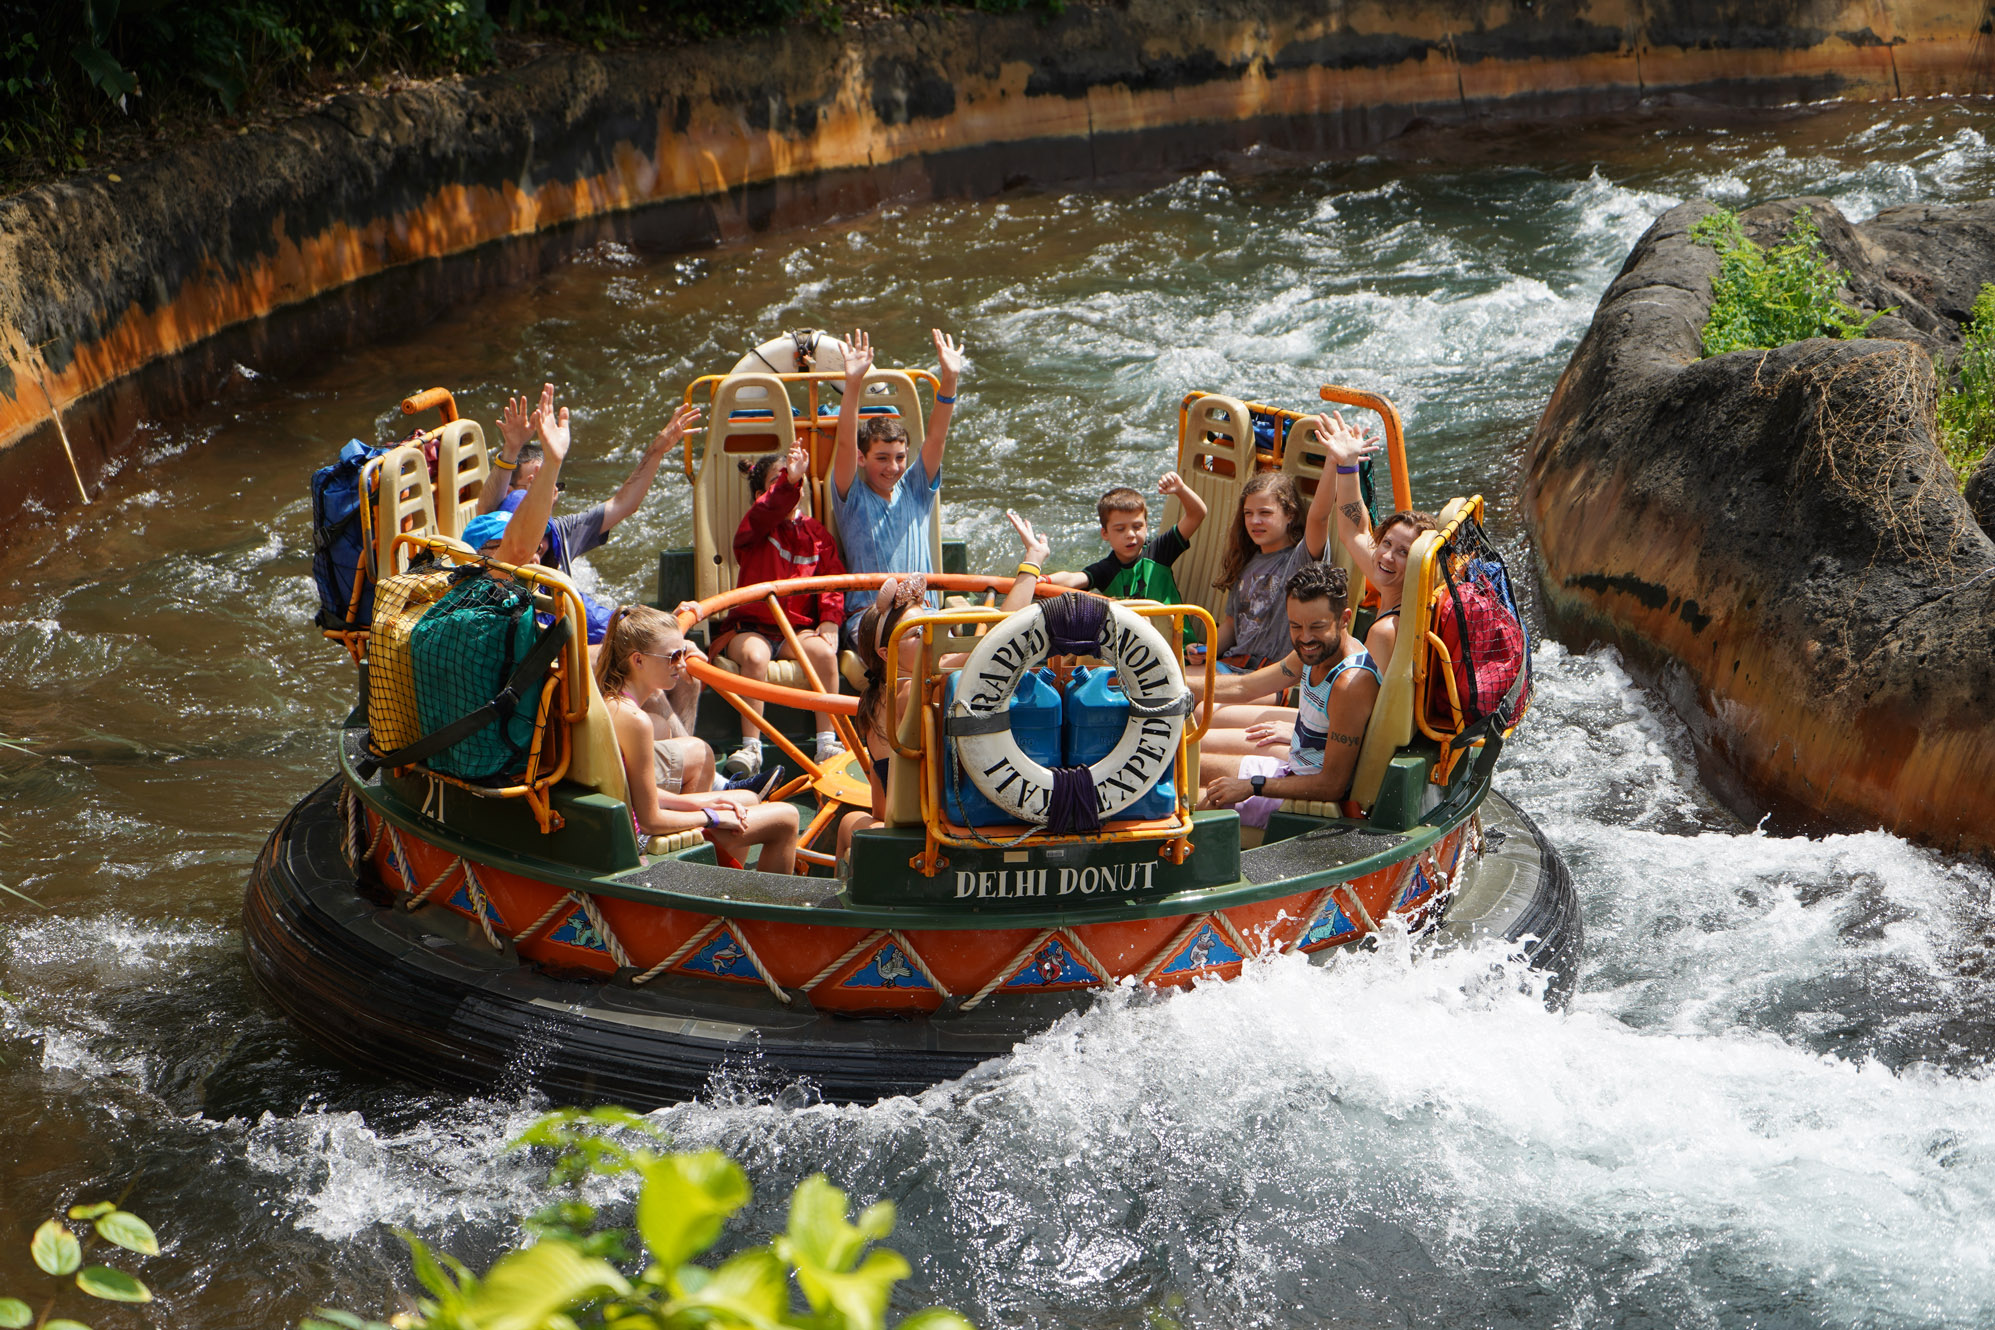 Scool group riding Disney World's Kali River Rapids